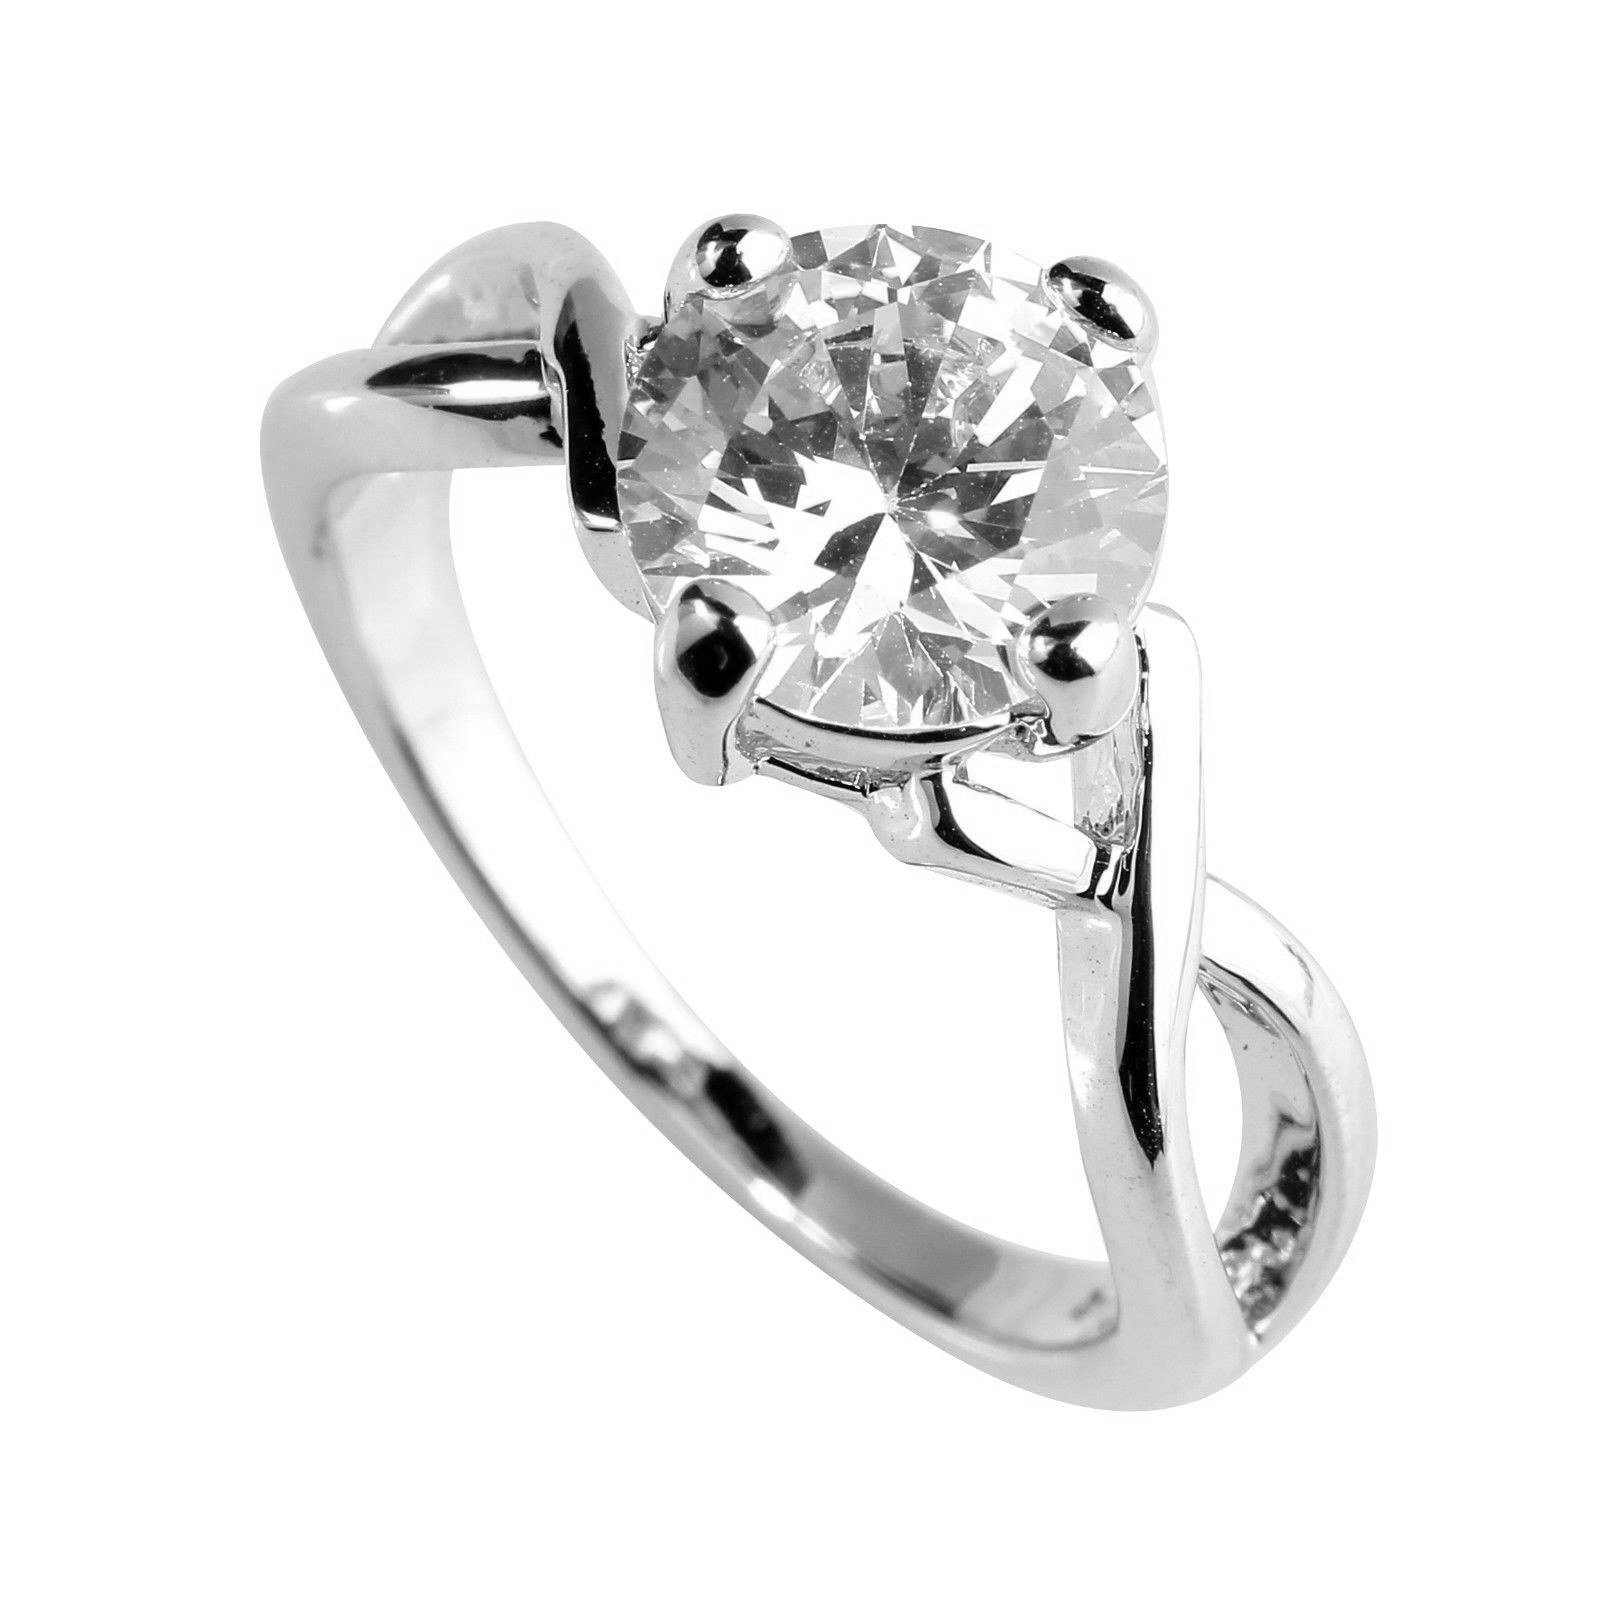 Cubic Zirconia 4 Claw Ring Silver Size 9